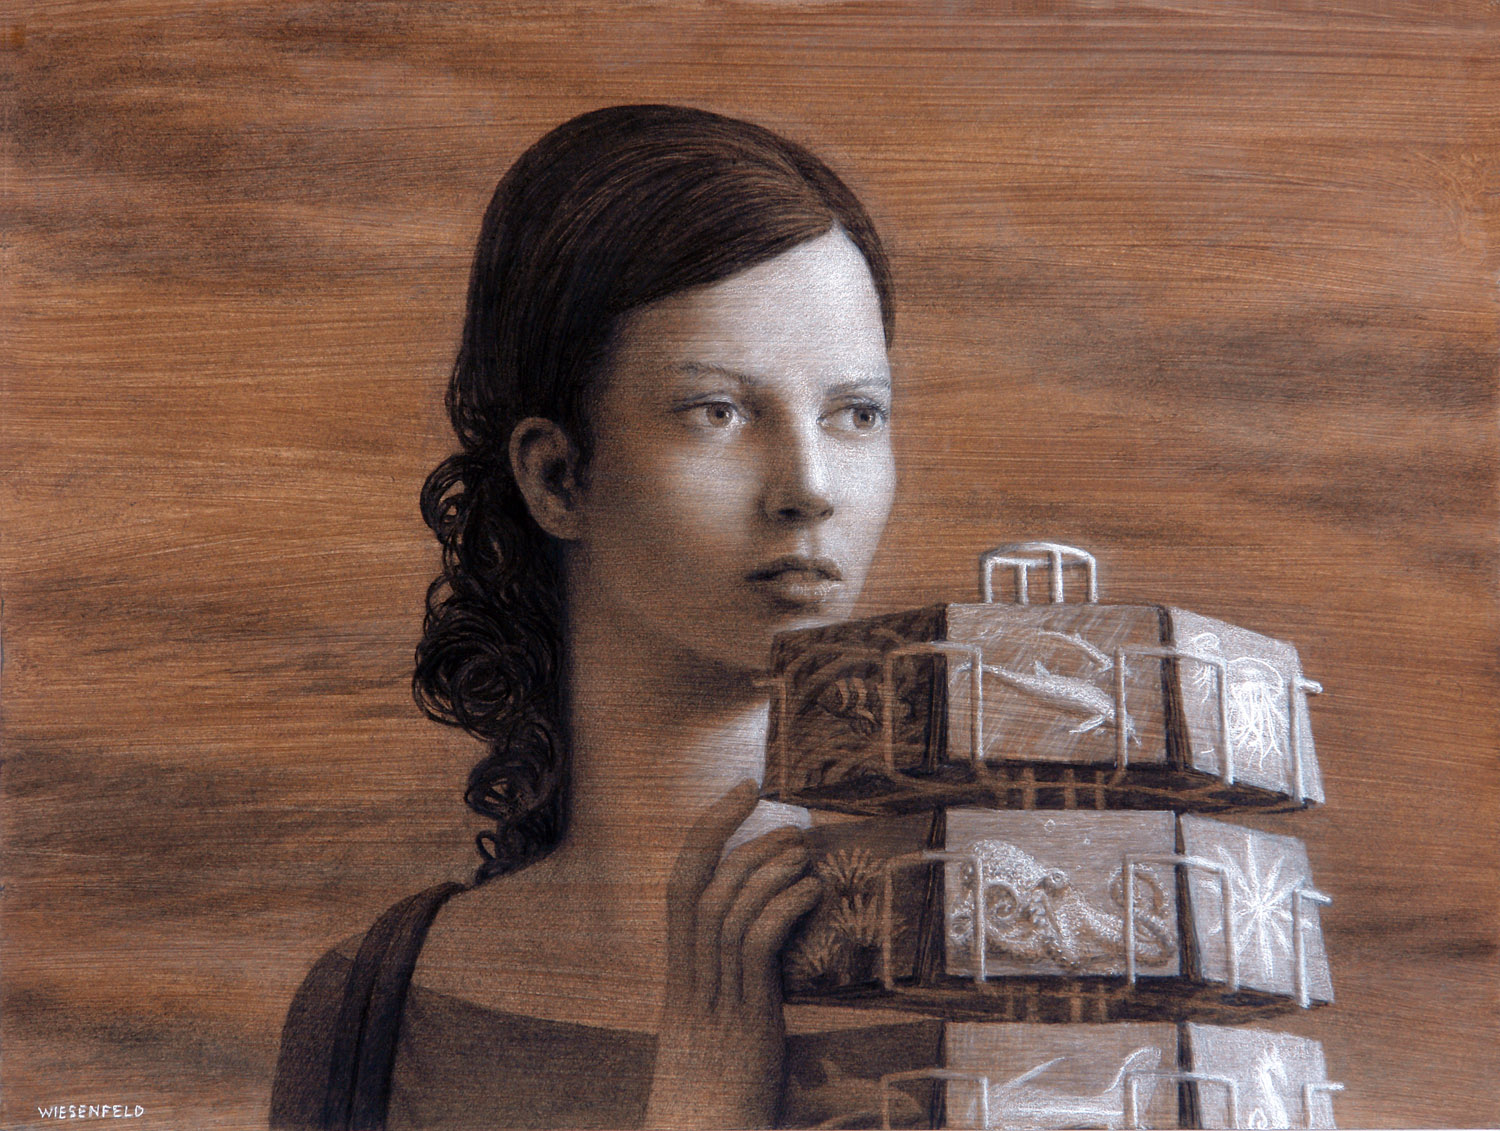 Postcards , charcoal on prepared paper, 18 x 24 in, 2009